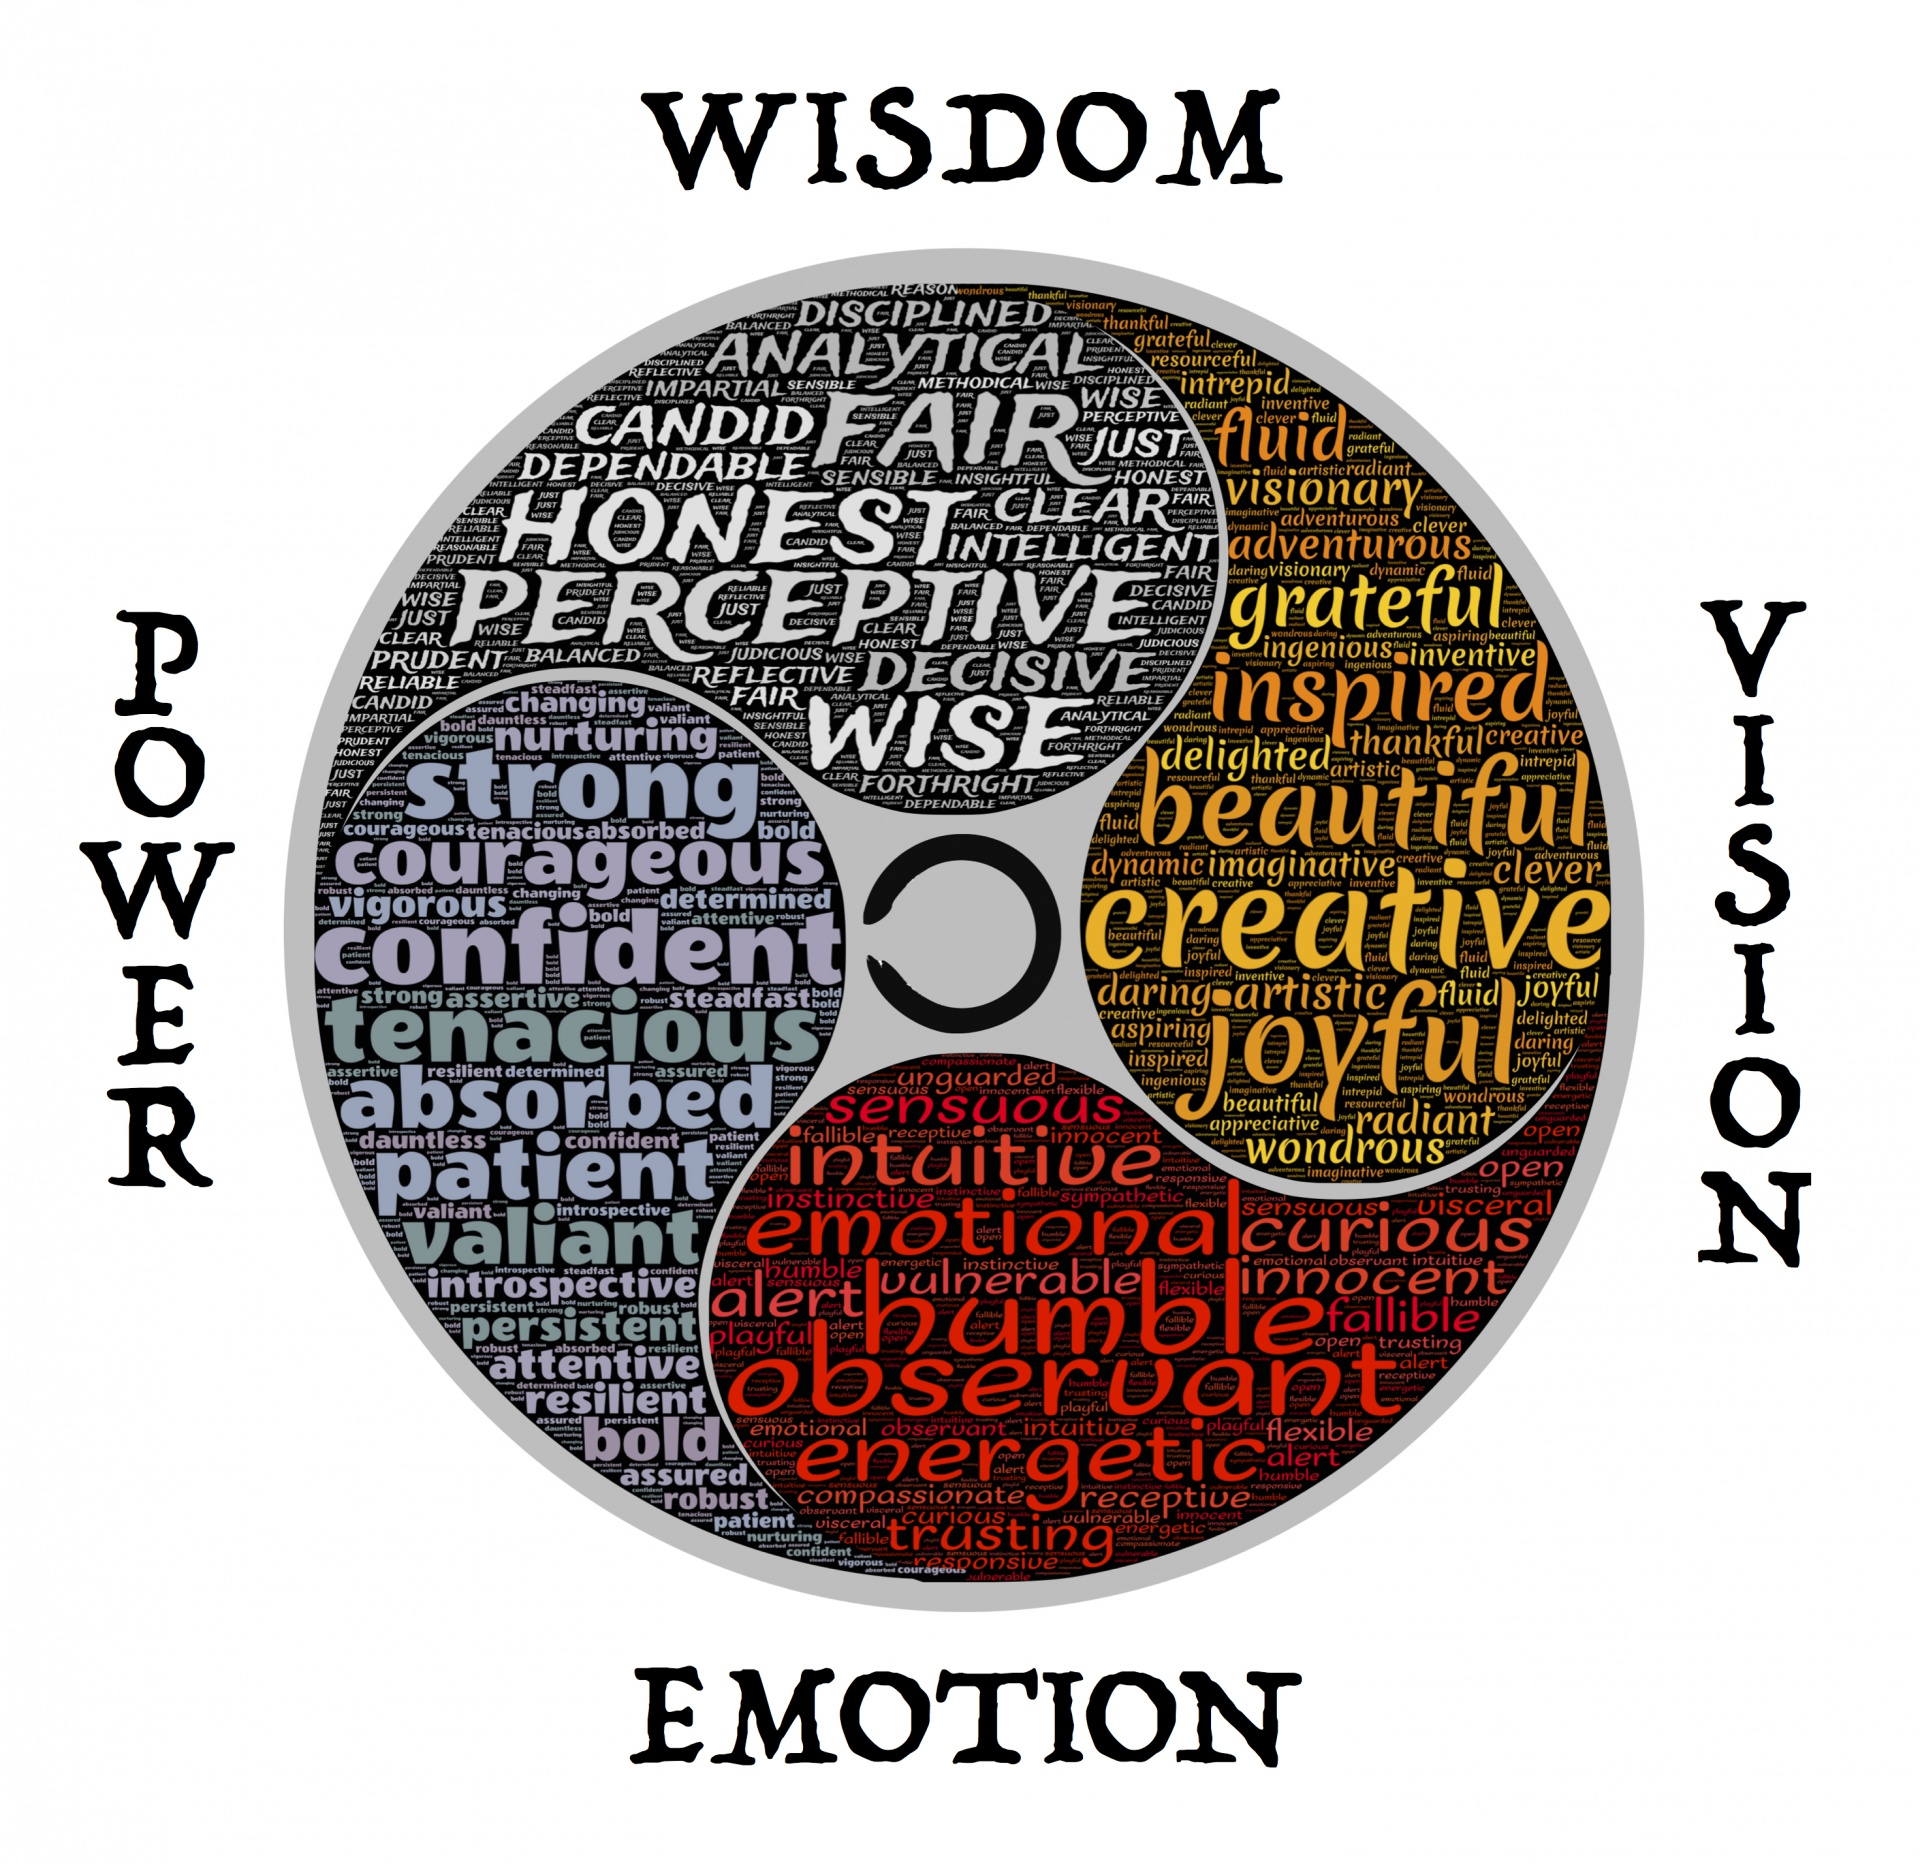 Wisdom Vision Emotion Power, John Hain, self-examination